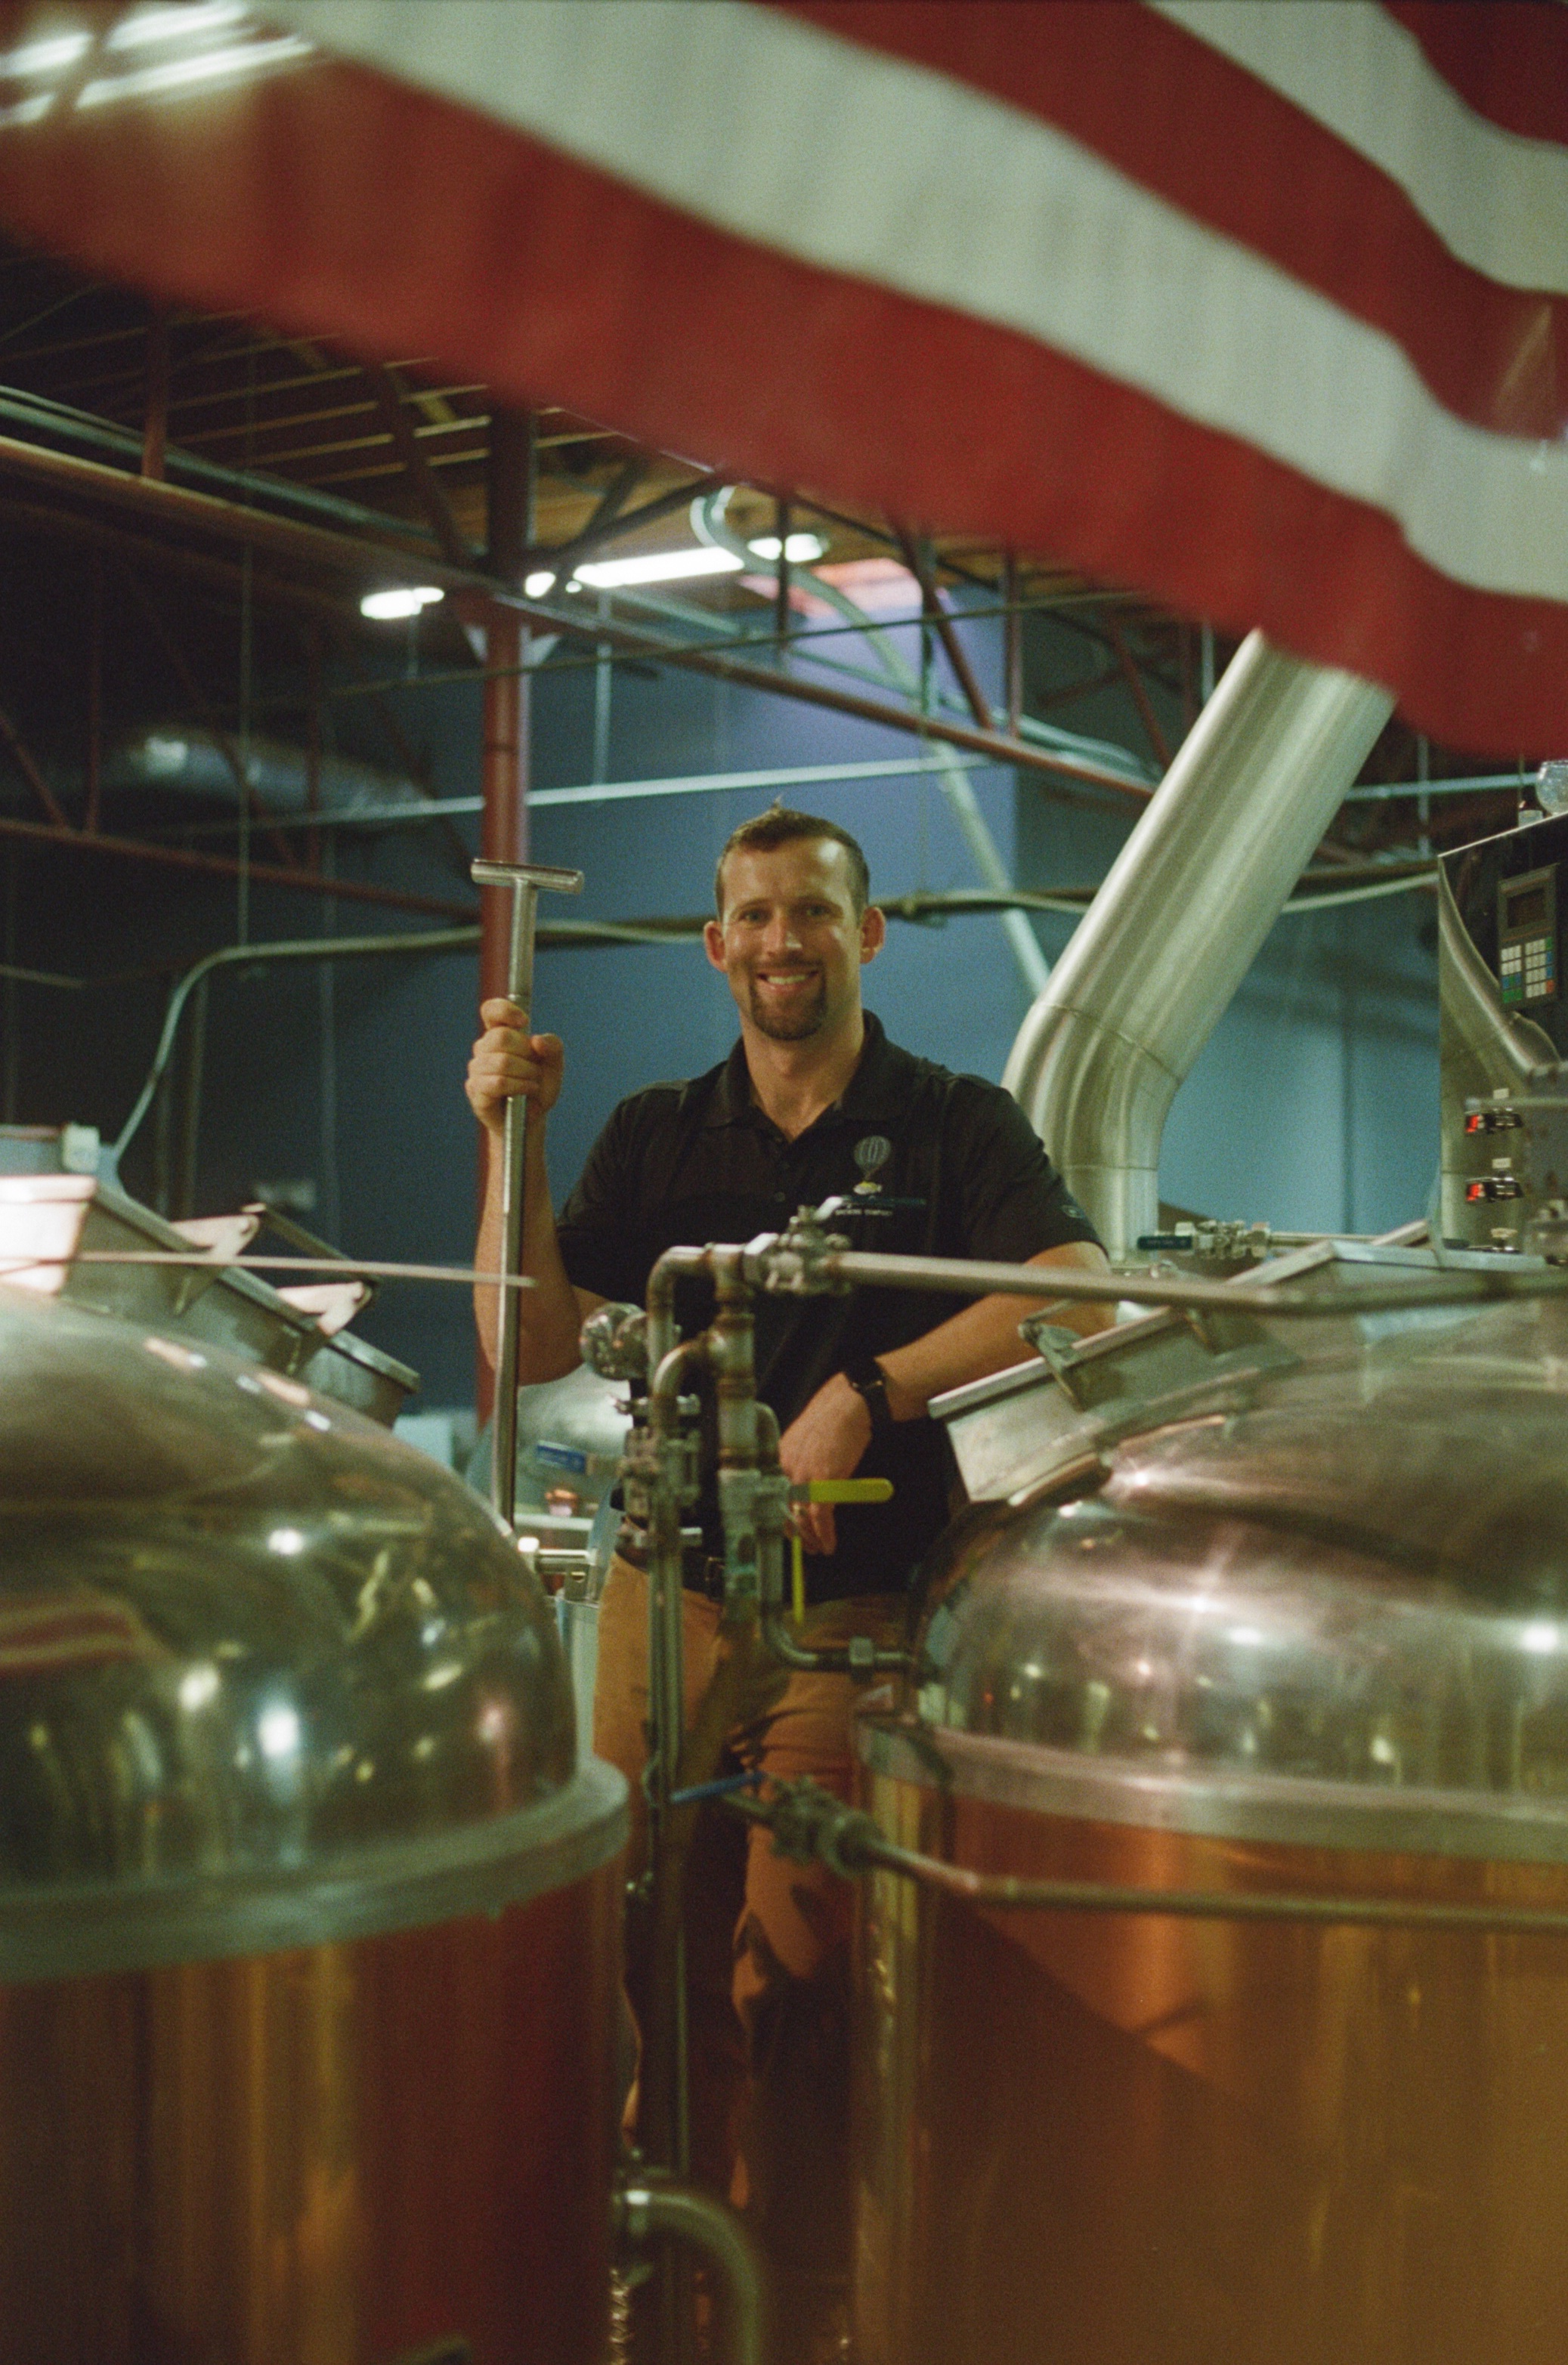 Mastering Belgian-style beers in North Carolina, Sugar Creek Brewing Co.'s Joe Vogelbacher